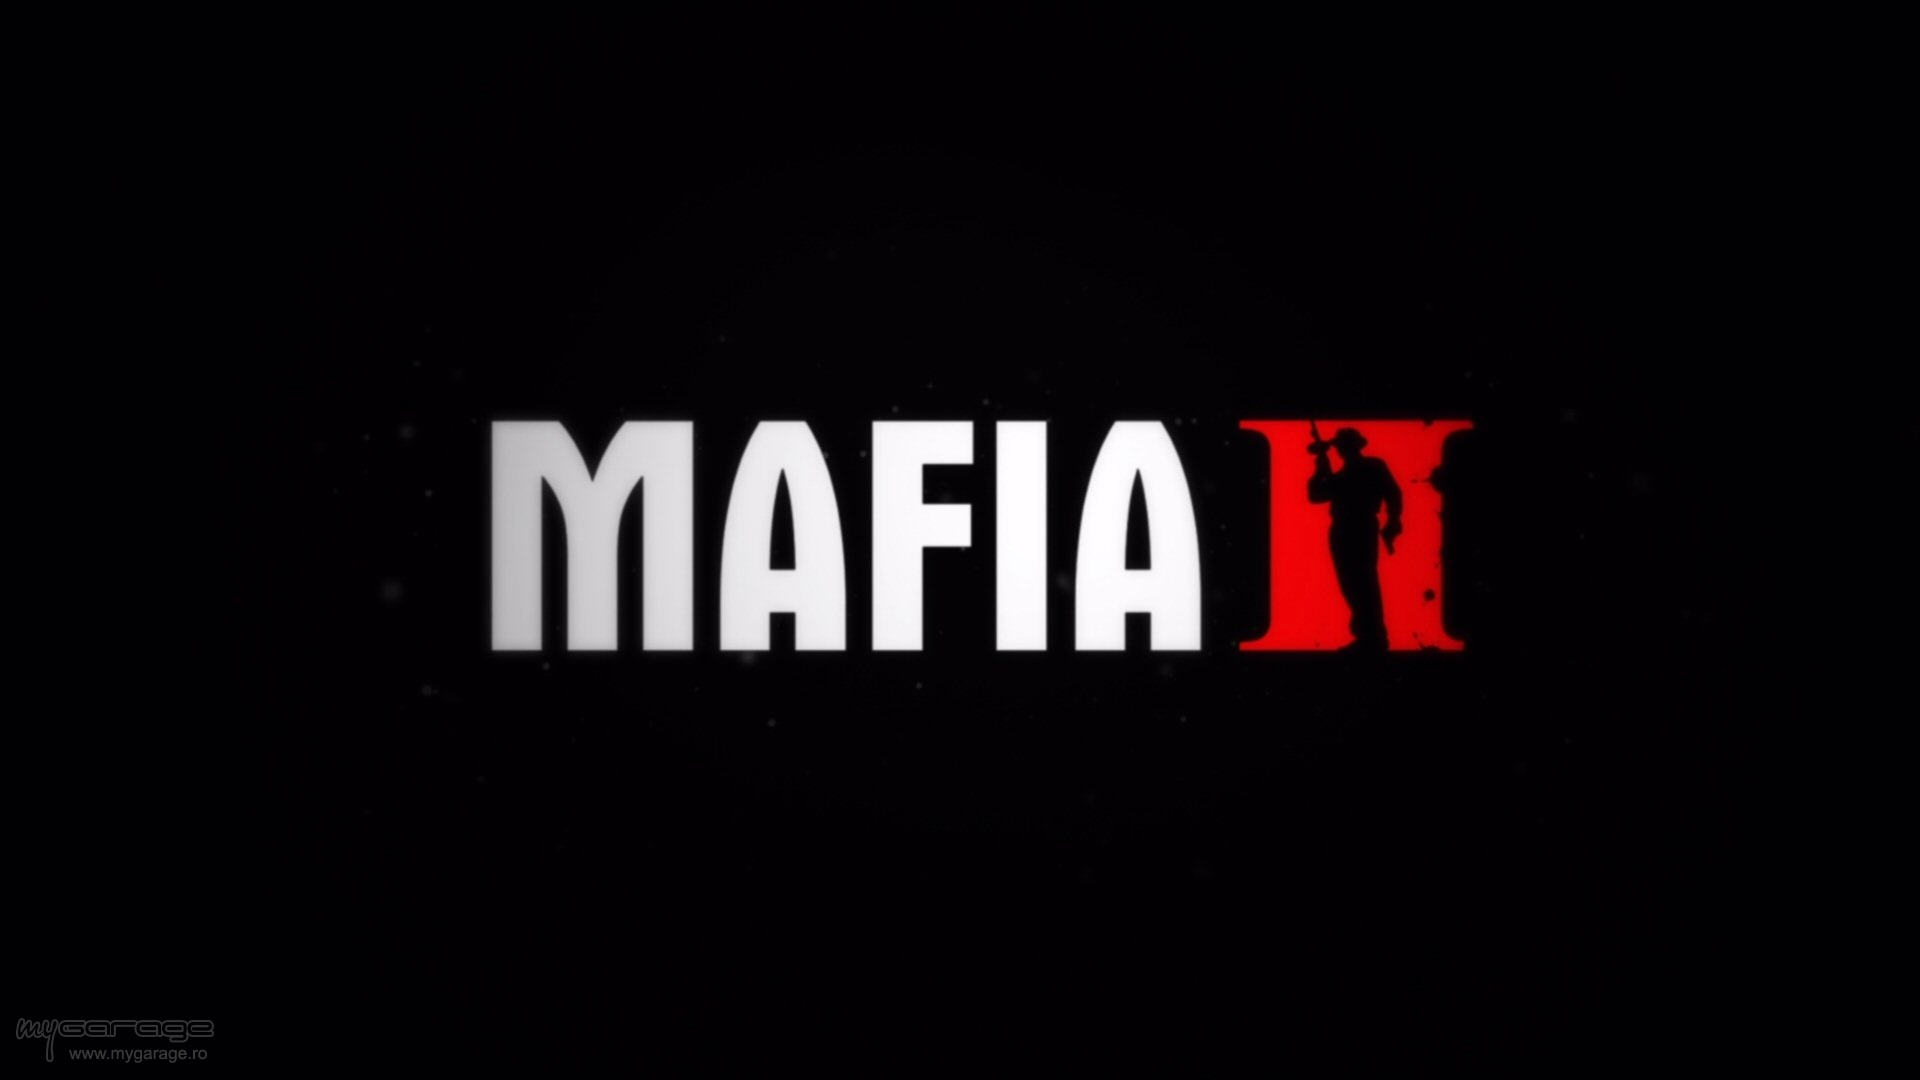 Mafia 2 wallpaper hd wallpaper 168610 for Bargain wallpaper